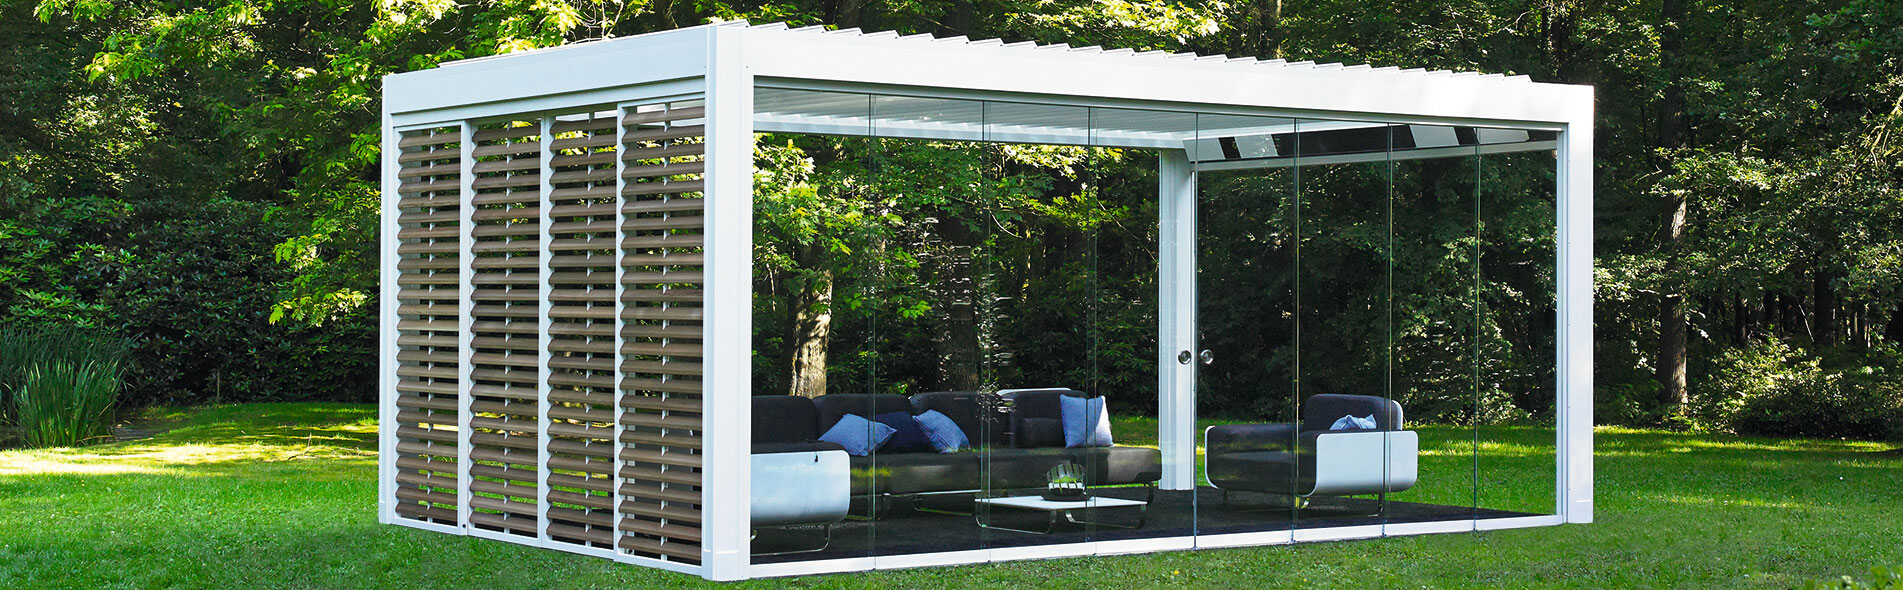 Algarve: pergola with a louvered roof | Renson Outdoor